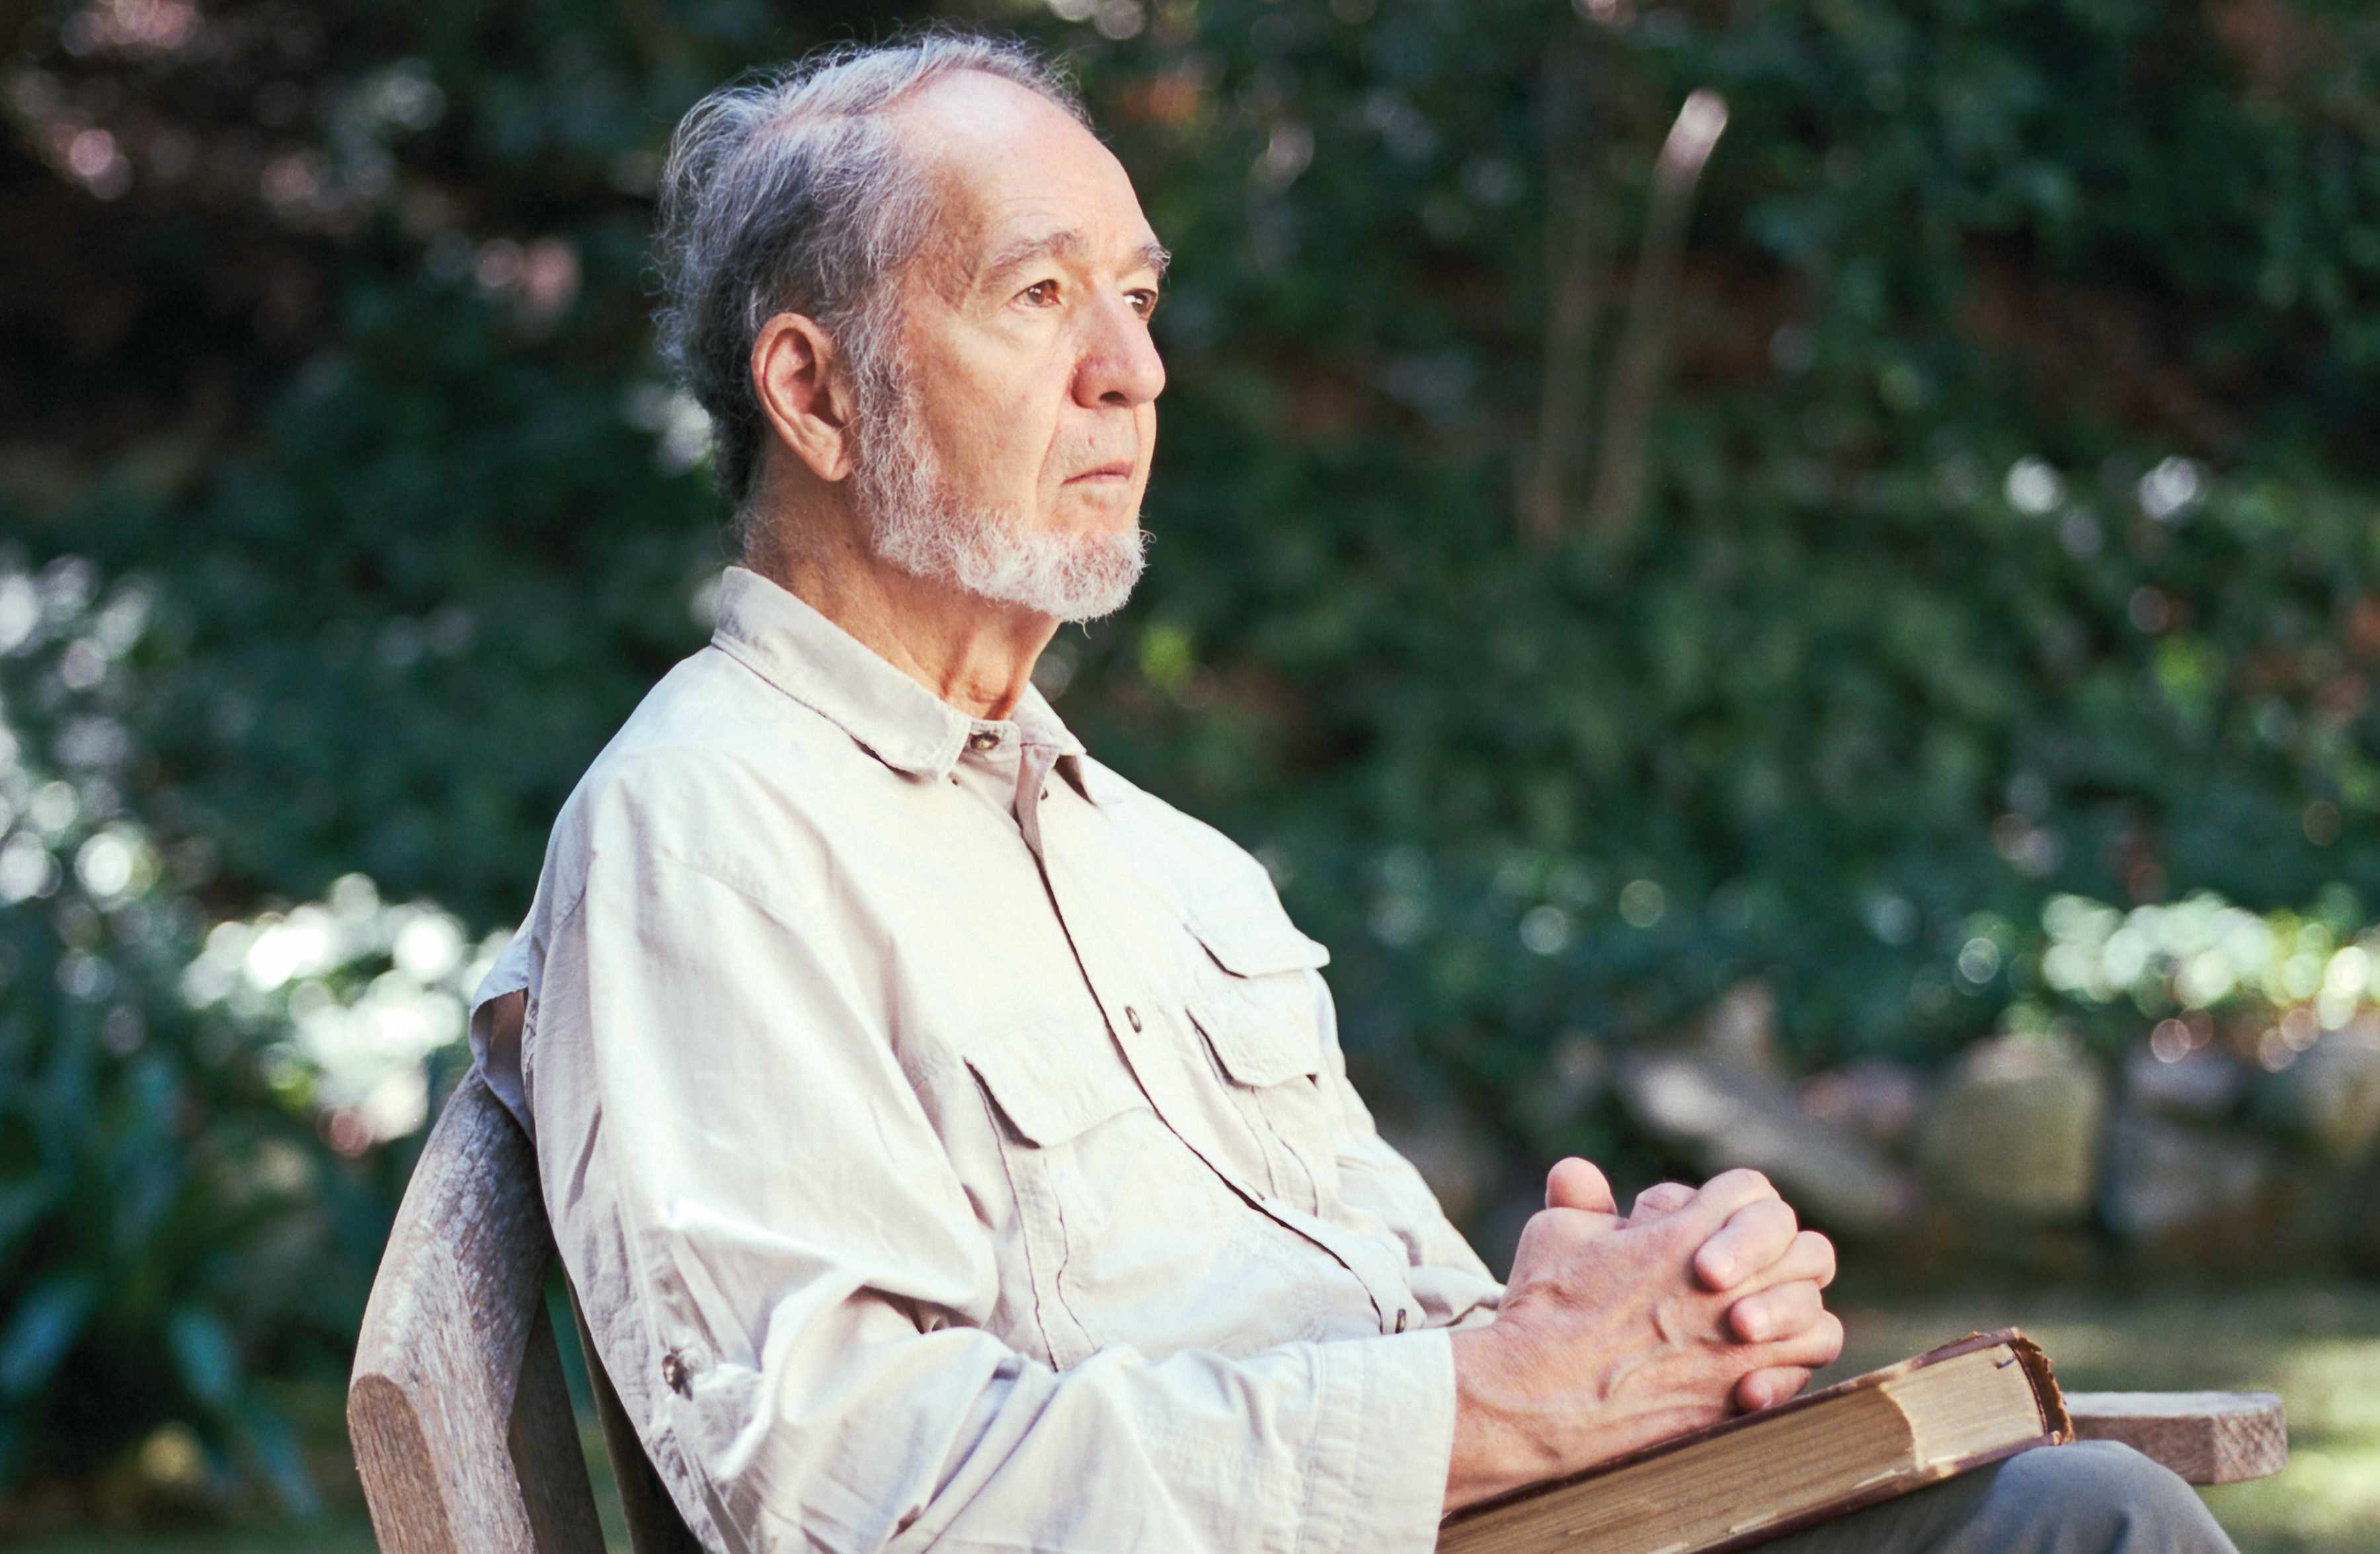 Based at UCLA, historian and geographer Jared Diamond has published a number of bestselling books, including 'The Third Chimpanzee' (1991), the Pulitze-winning 'Guns, Germs and Steel: The Fates of Human Societies' (1997), 'Collapse' (2005) and 'The World Until Yesterday' (2012). (Photo by Tom M Johnson)